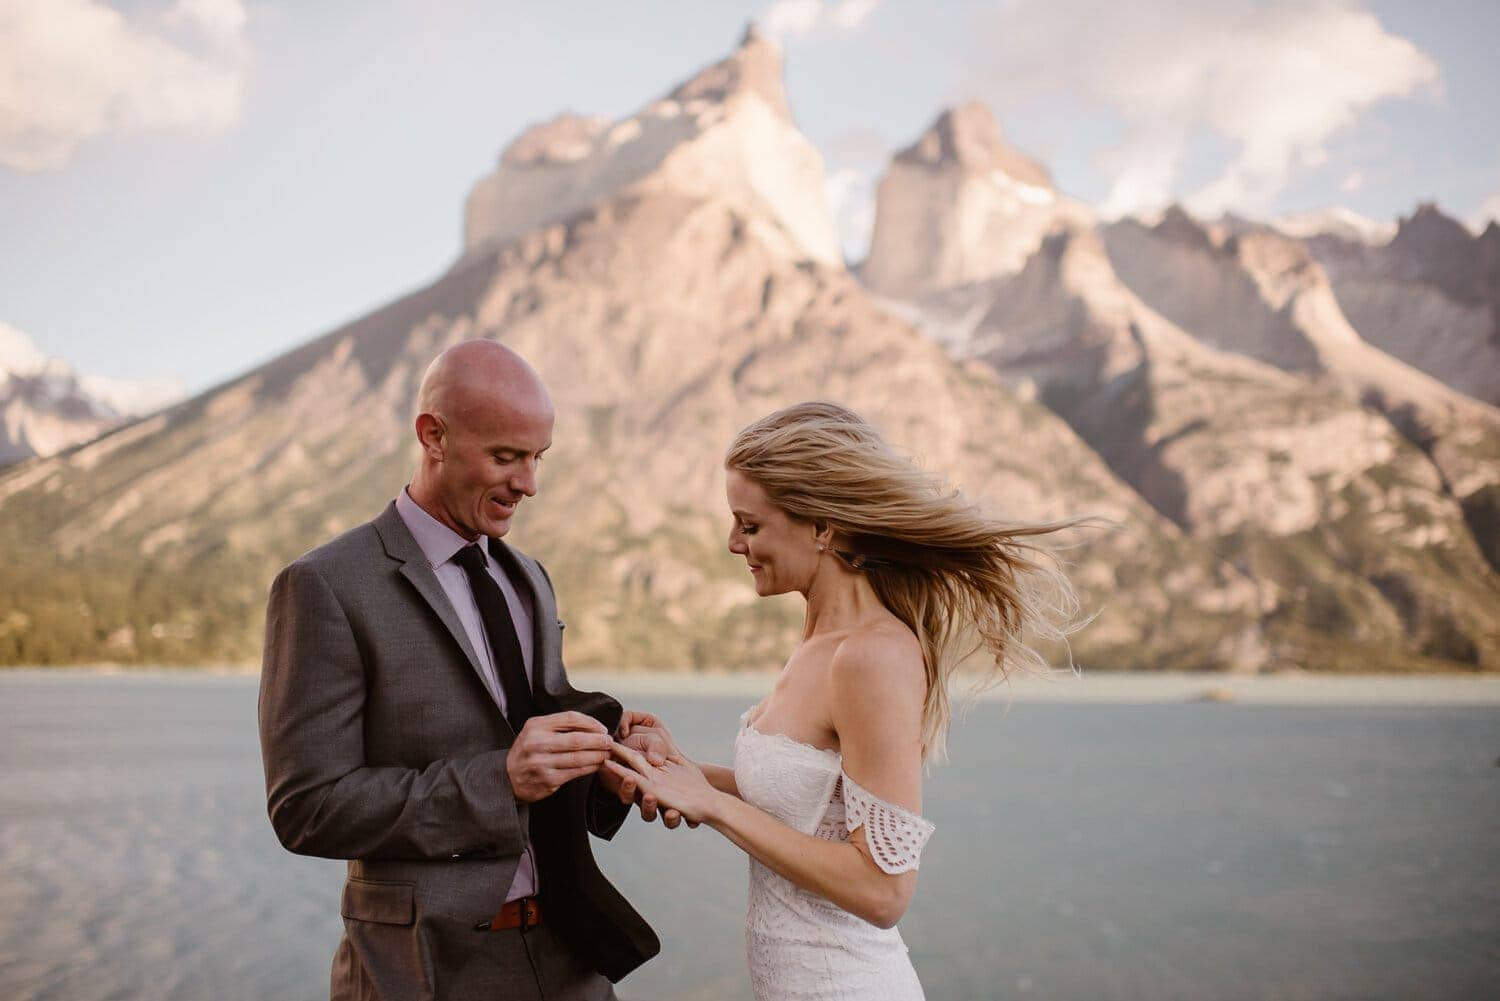 Couple have a Commitment Ceremony Simply by Themselves